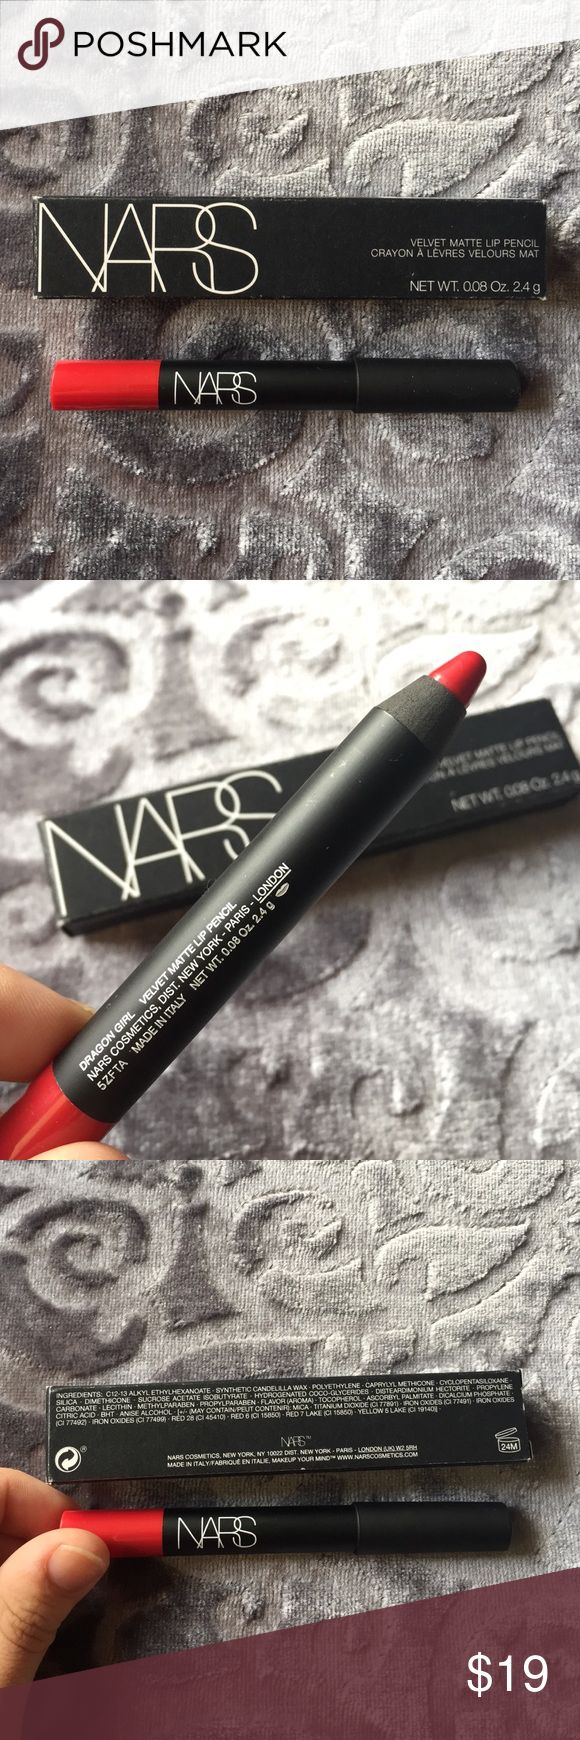 """NIB NARS Dragon Girl Velvet Matte Red Lipstick Brand new in box, never used nor swatched! NARS Velvet Matte Lipstick pencil in the shade """"Dragon Girl,"""" a fiery red. Full sized, retails for $26. NARS Makeup Lipstick"""